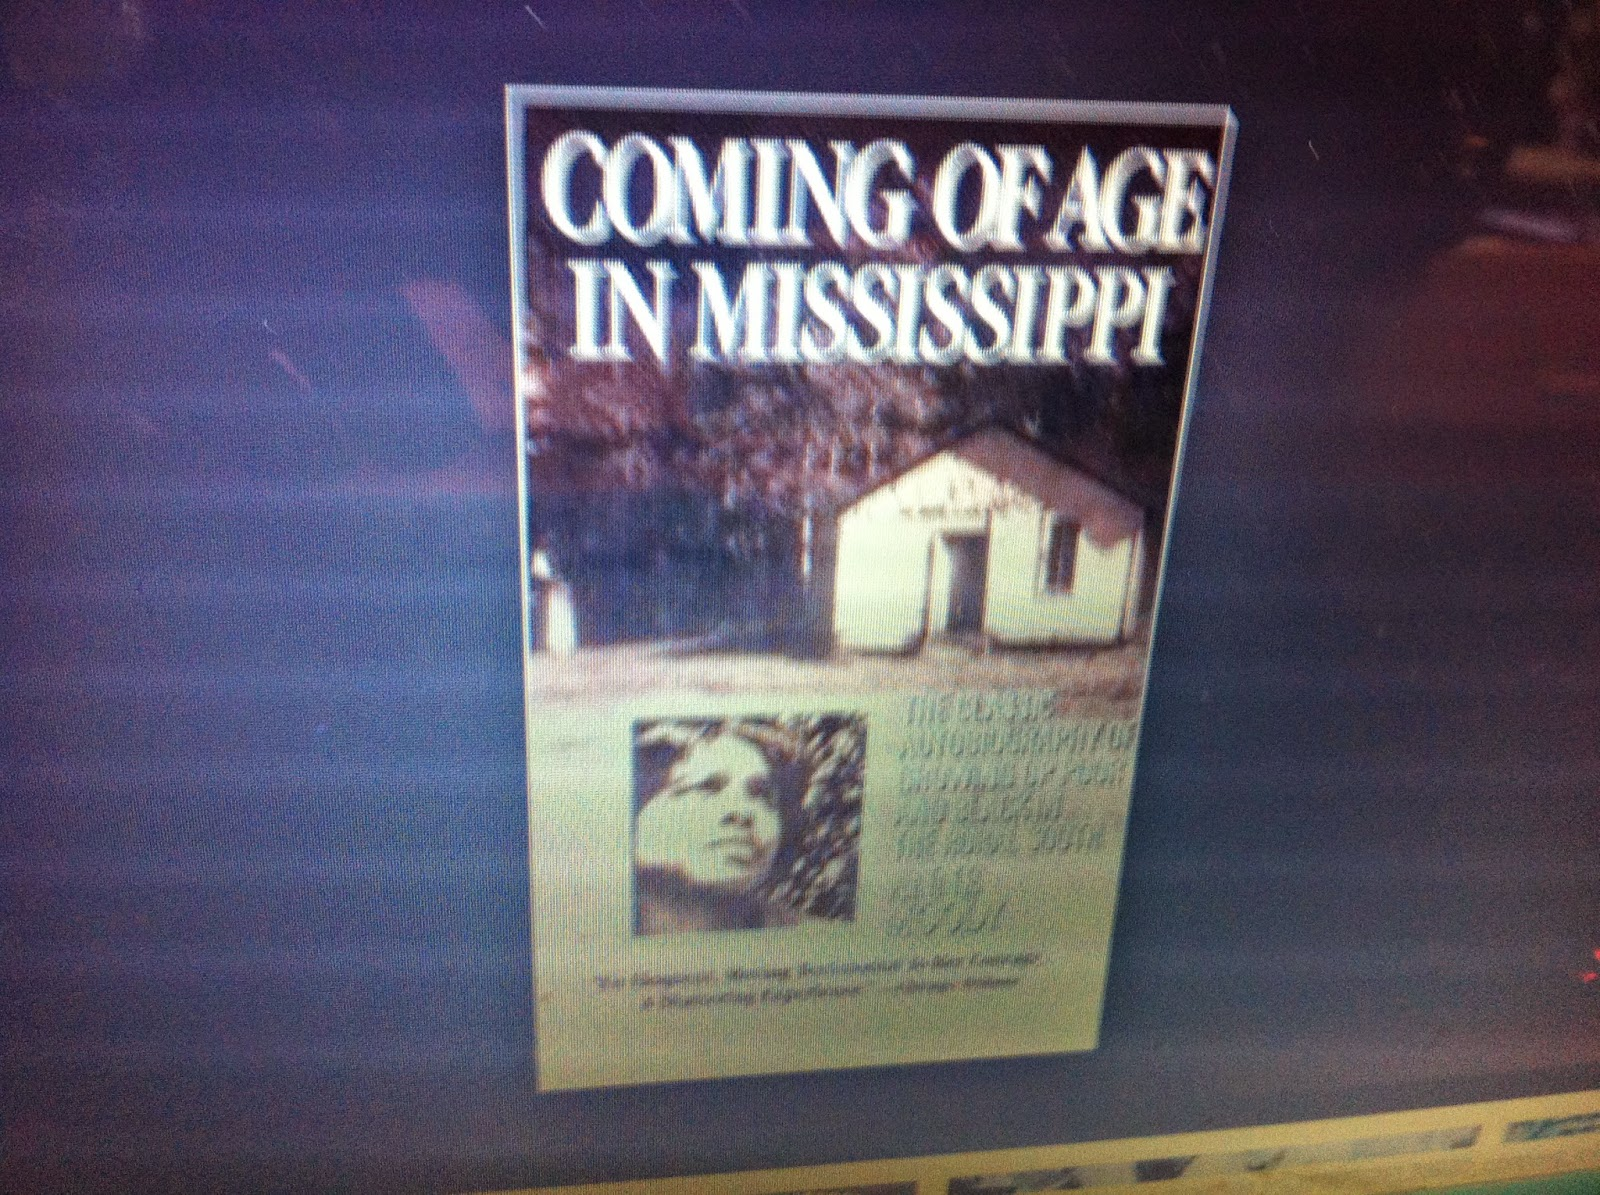 coming of age in mississippi and segregation   essay example  coming of age in mississippi and segregation